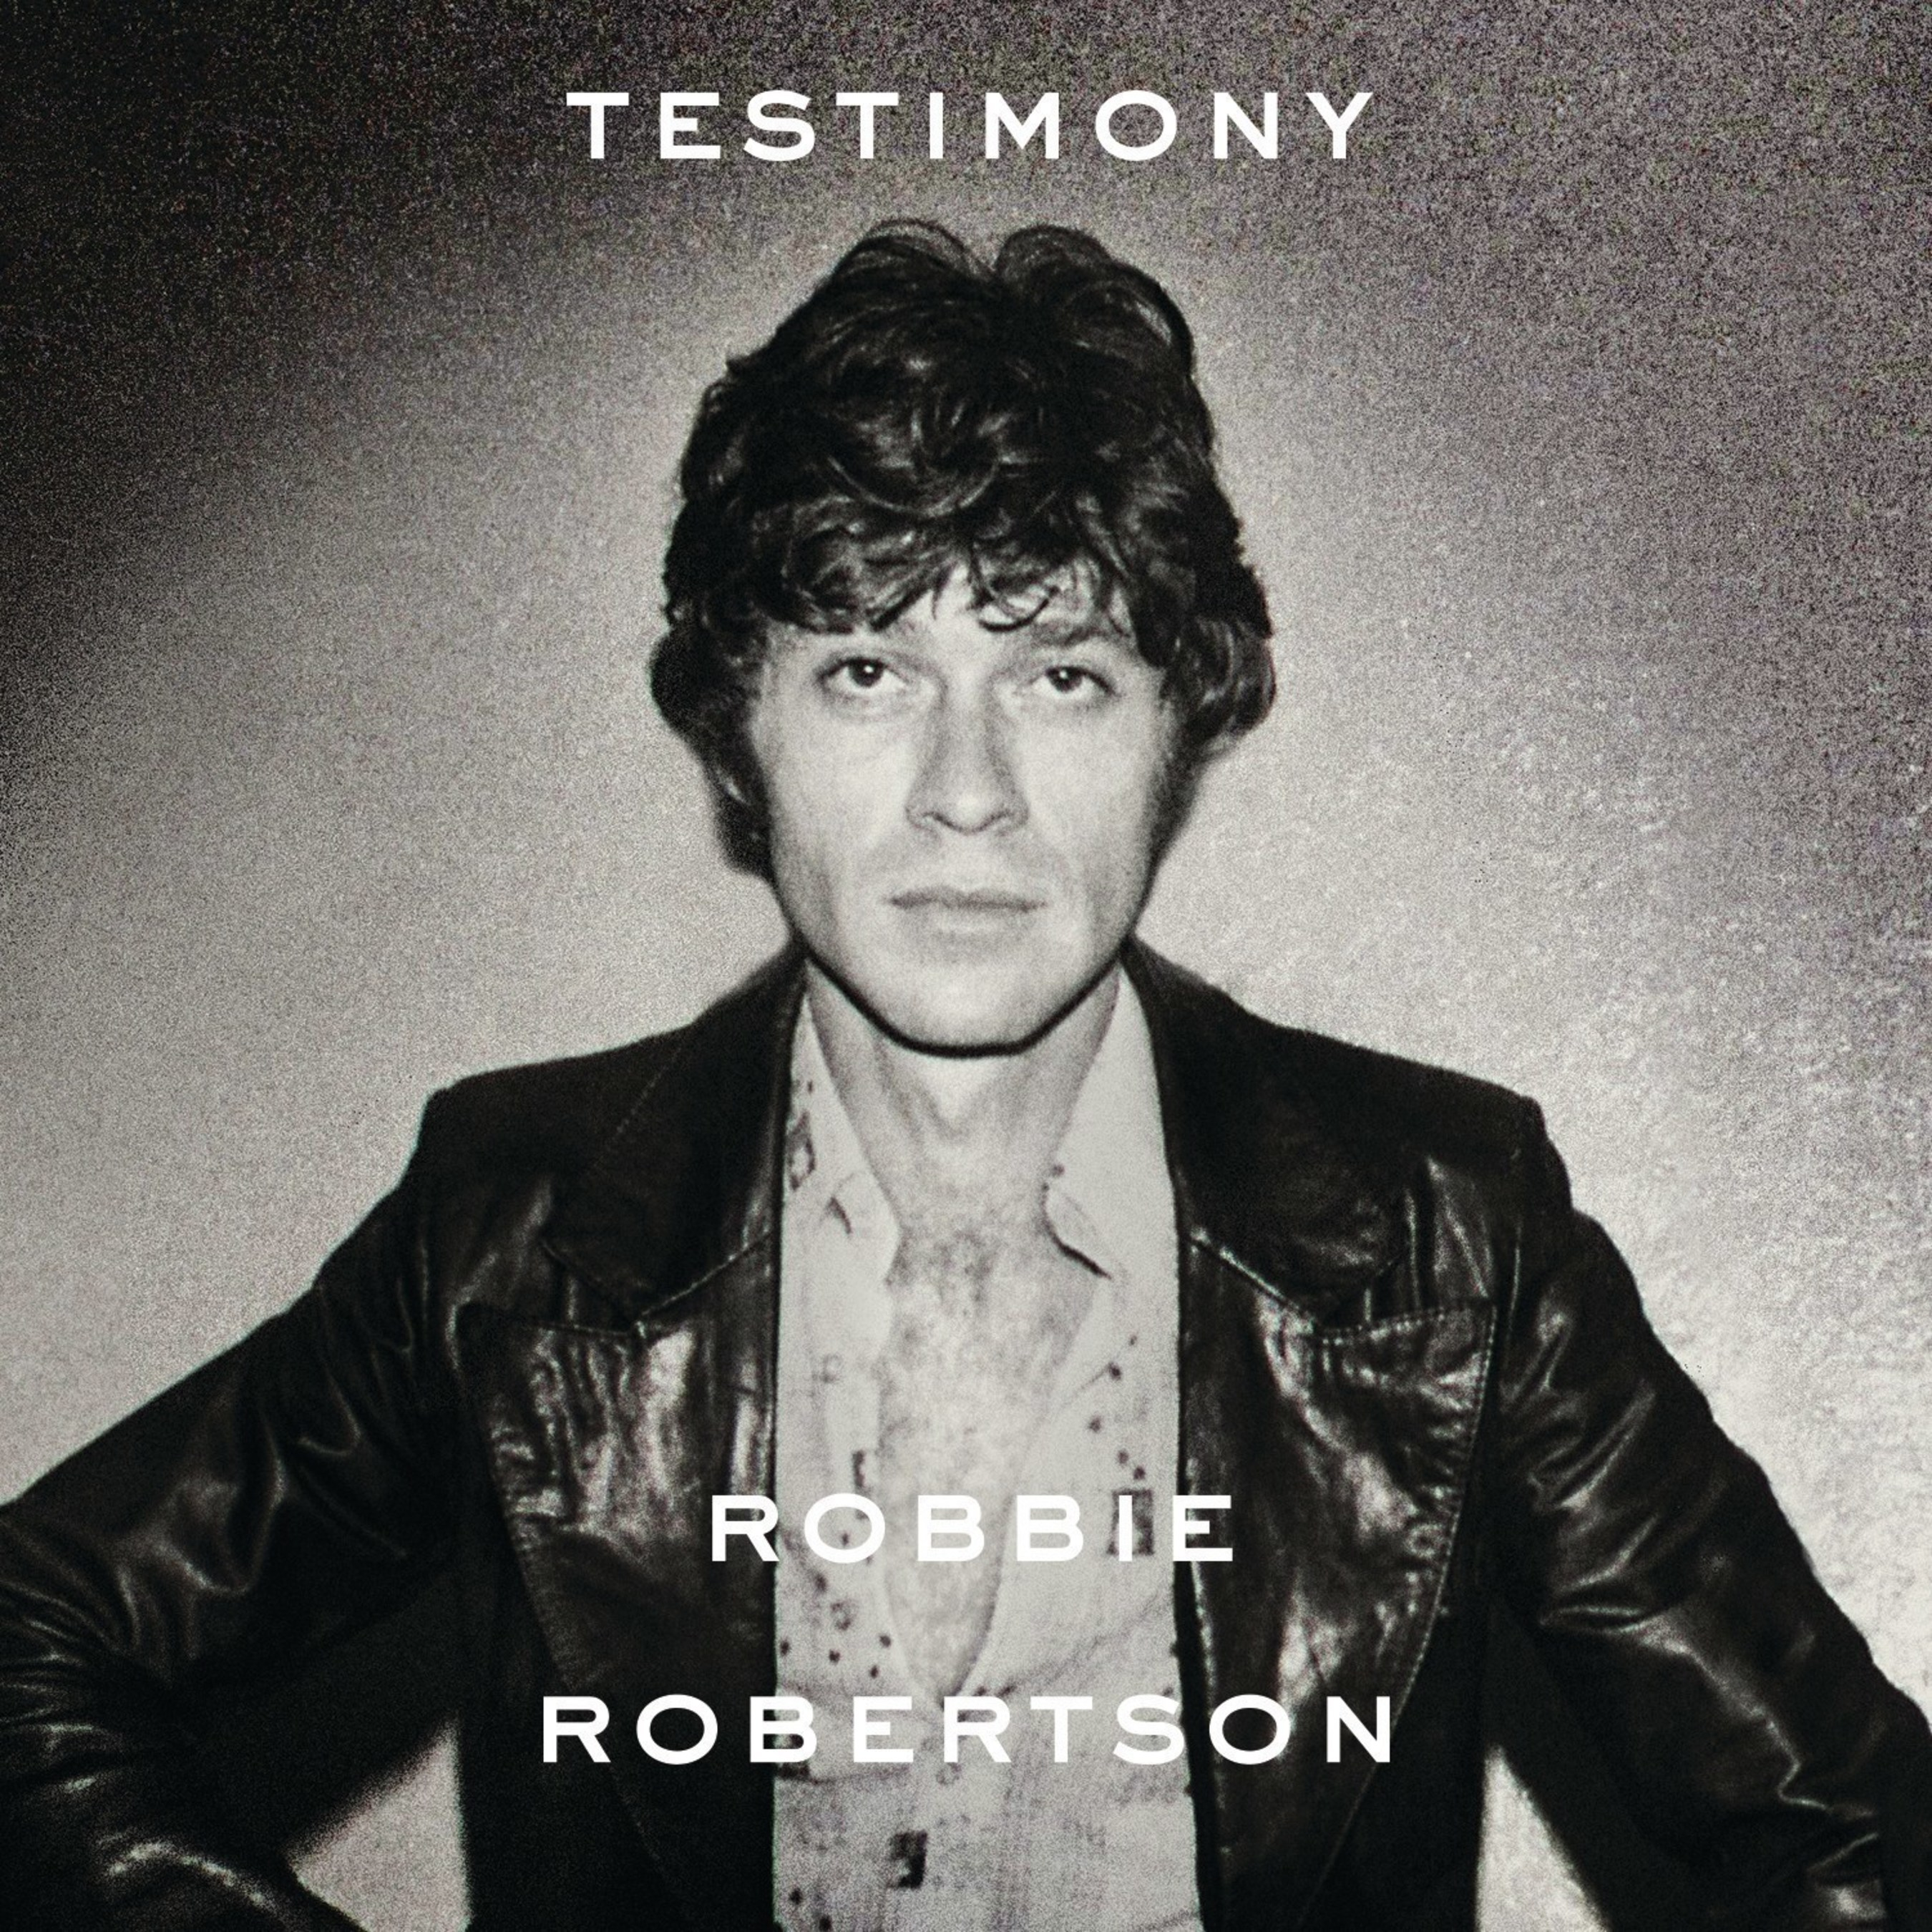 Robbie Robertson Curates New, Career-Spanning 'Testimony' Anthology Album, To Be Released November 11 By UMe